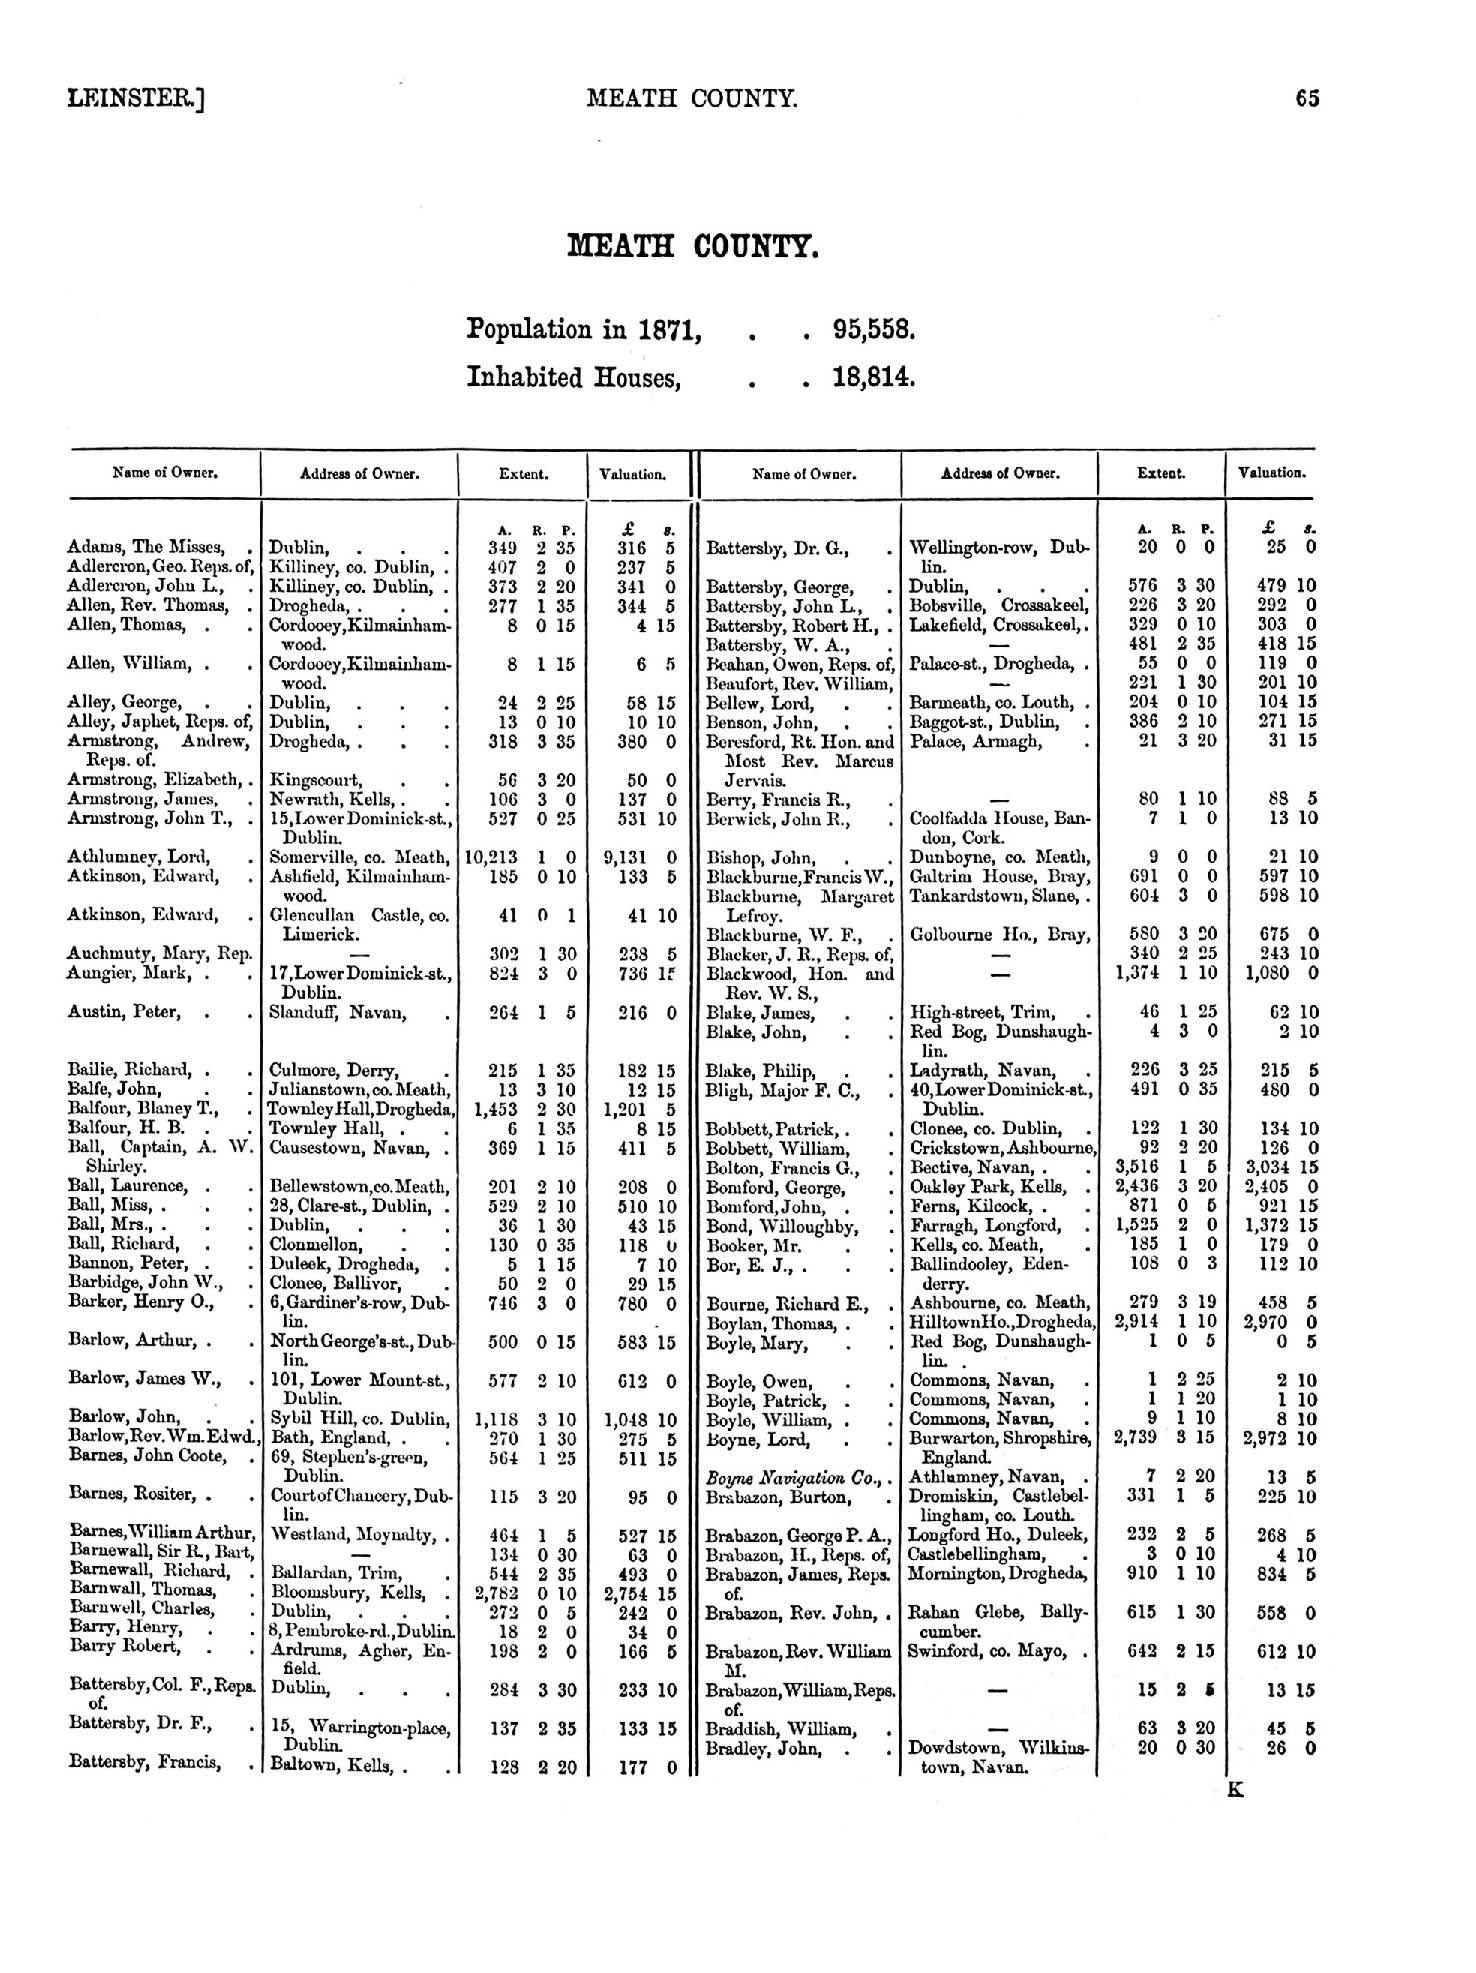 Return of Owners of Land, 1876 page 65 - click to open larger version in a new window